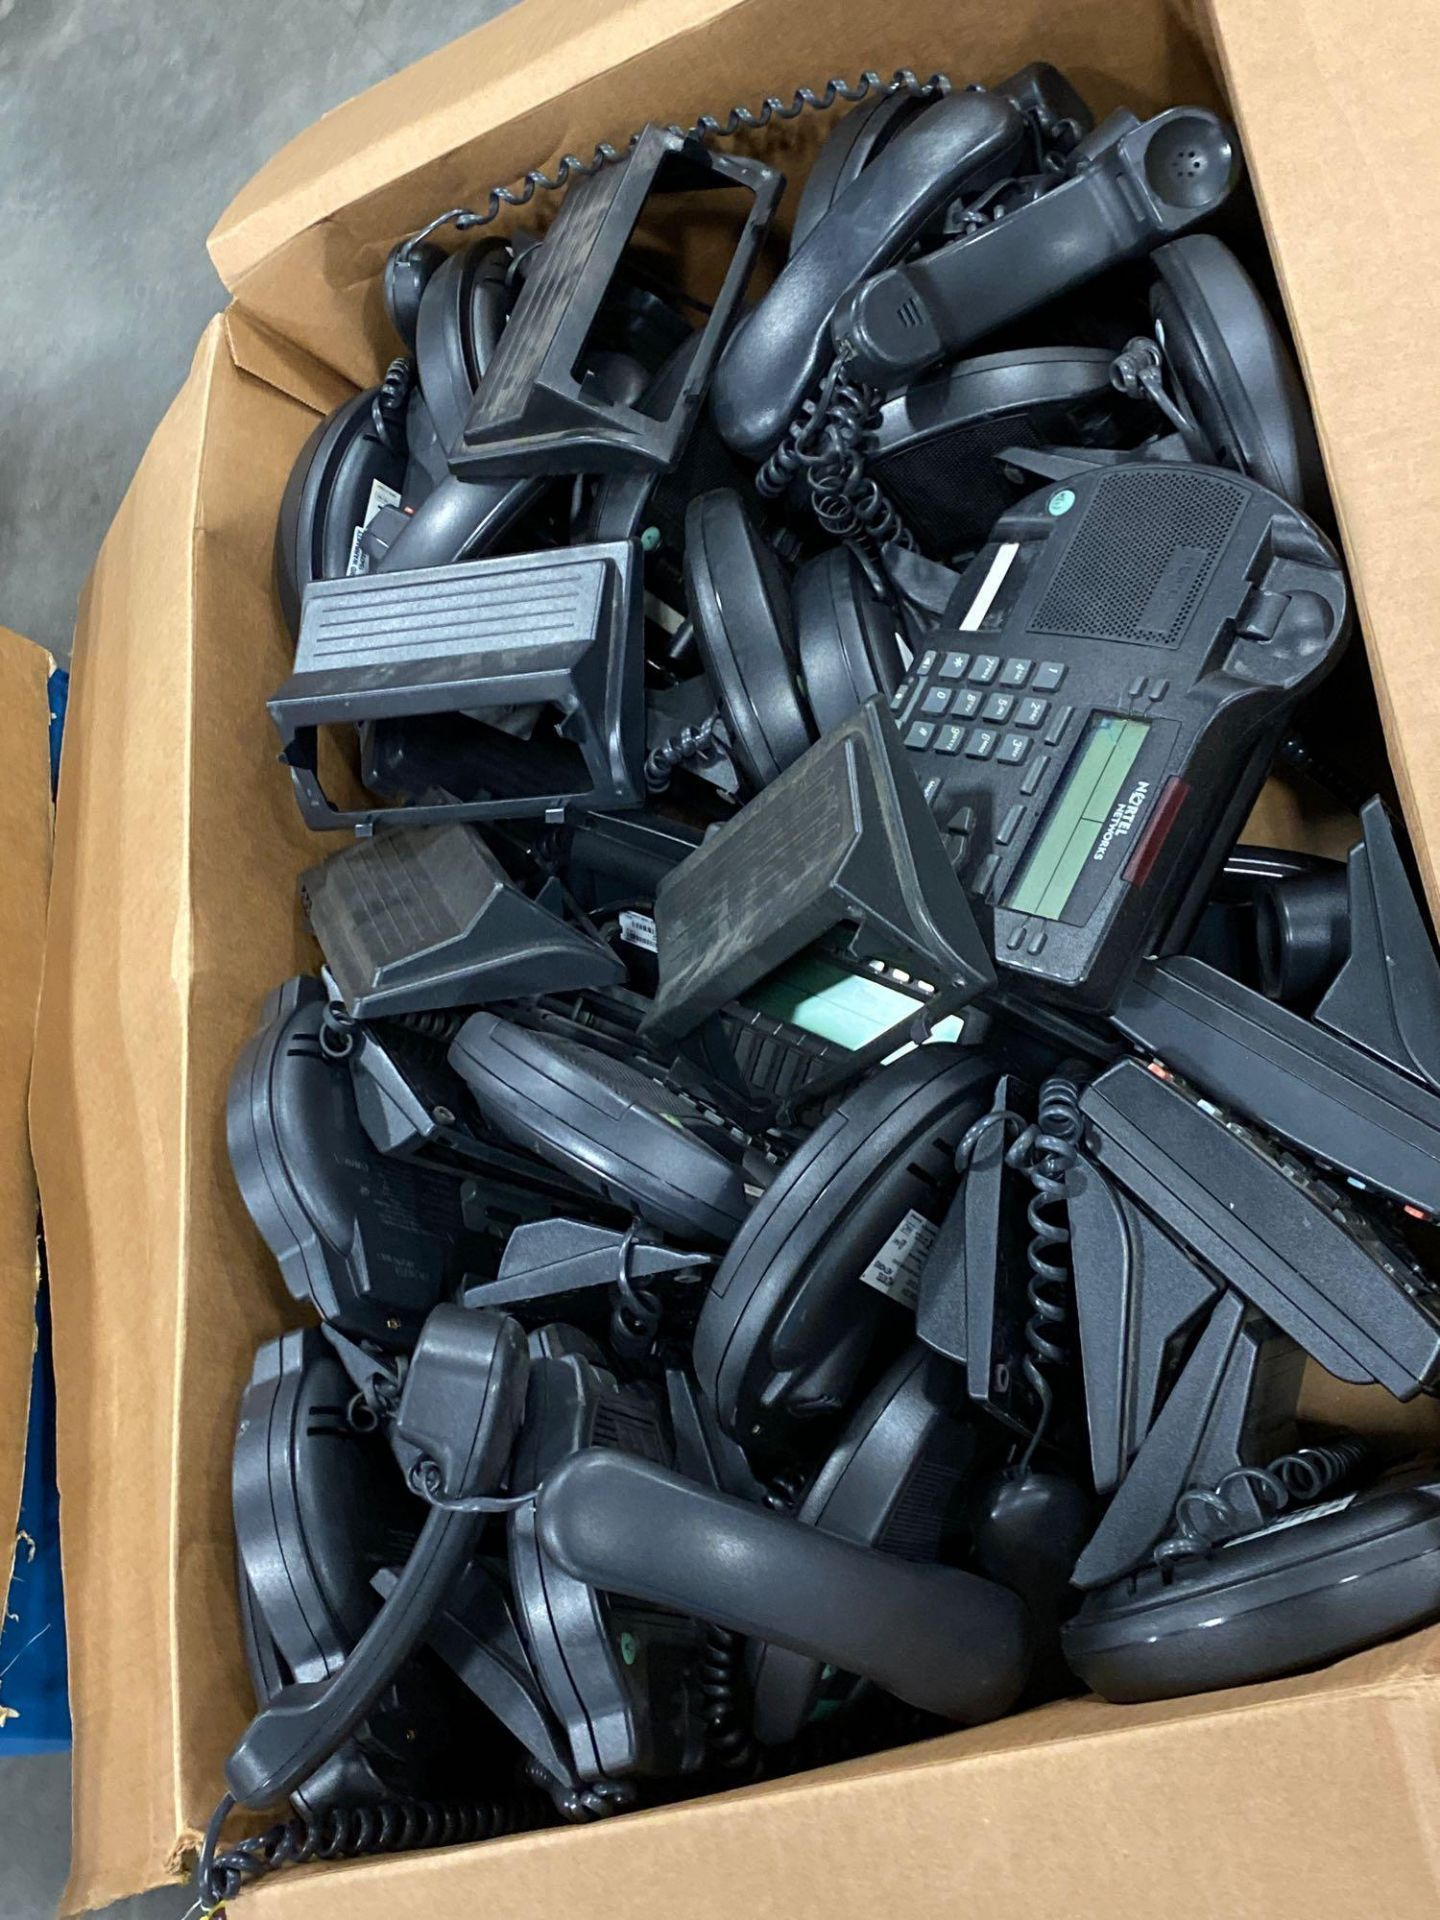 TWO BOXES OF CISCO IP PHONES - Image 2 of 4